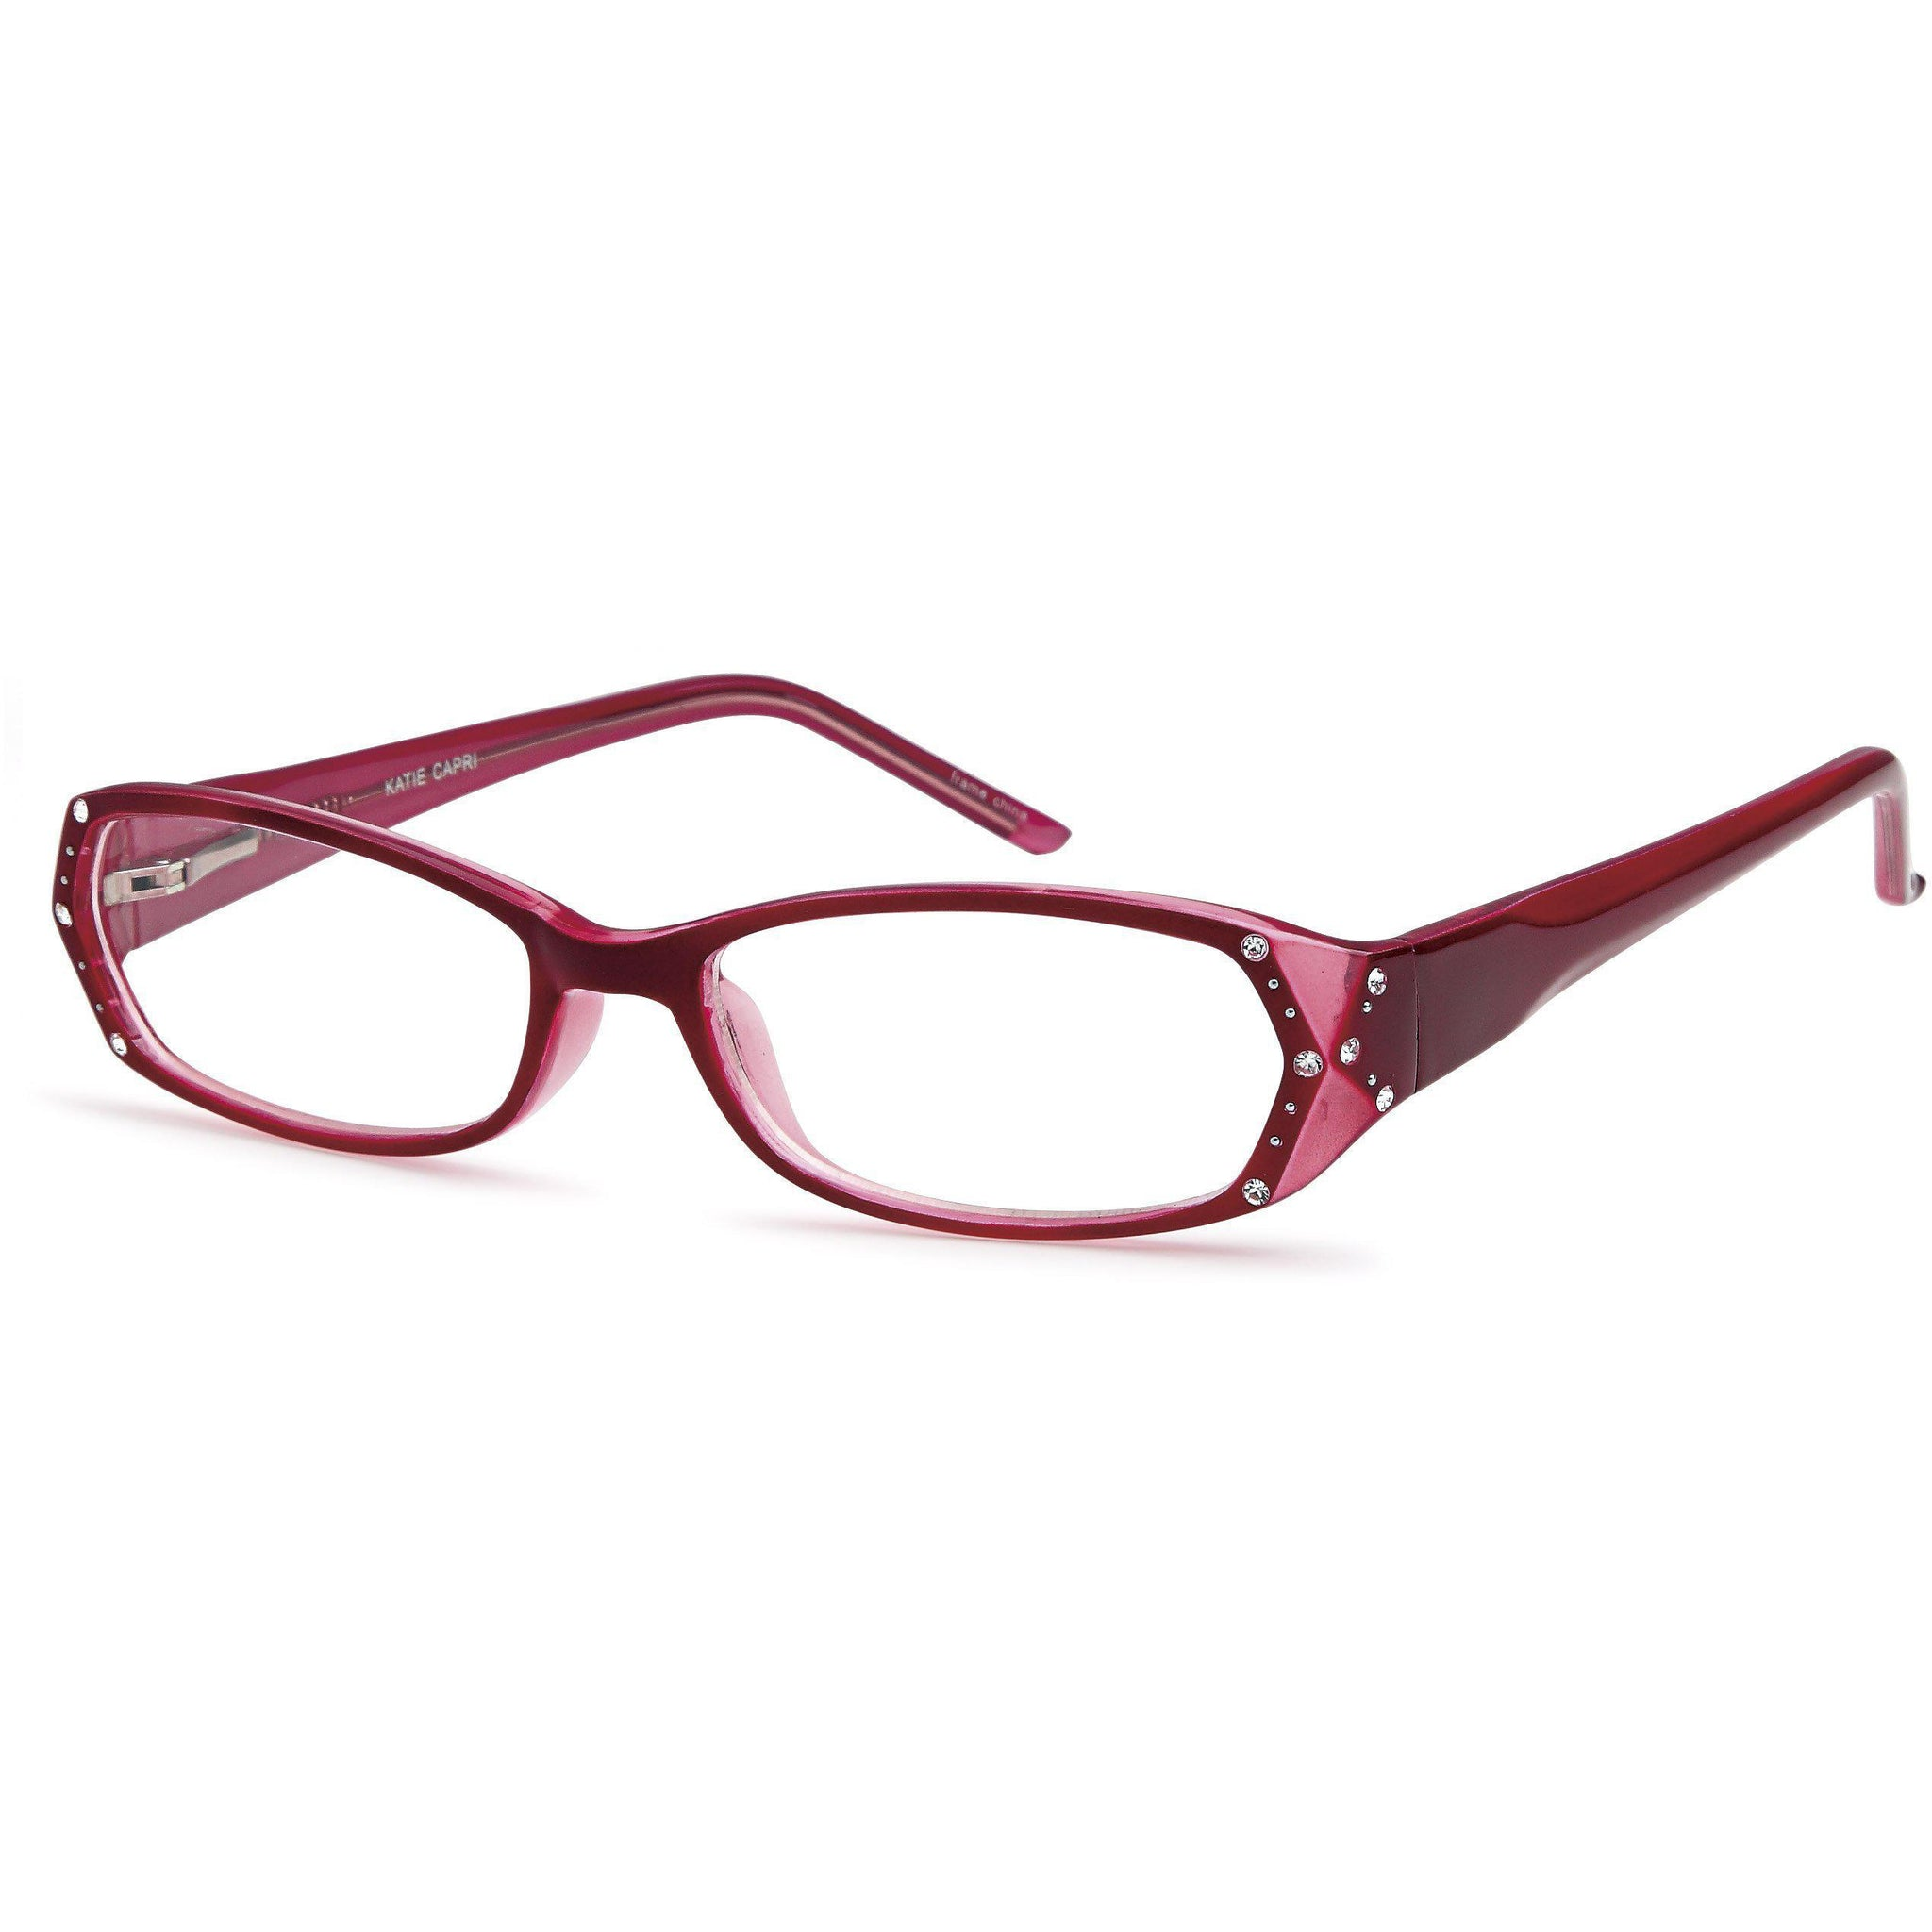 Everyday Prescription Glasses KATIE Frame